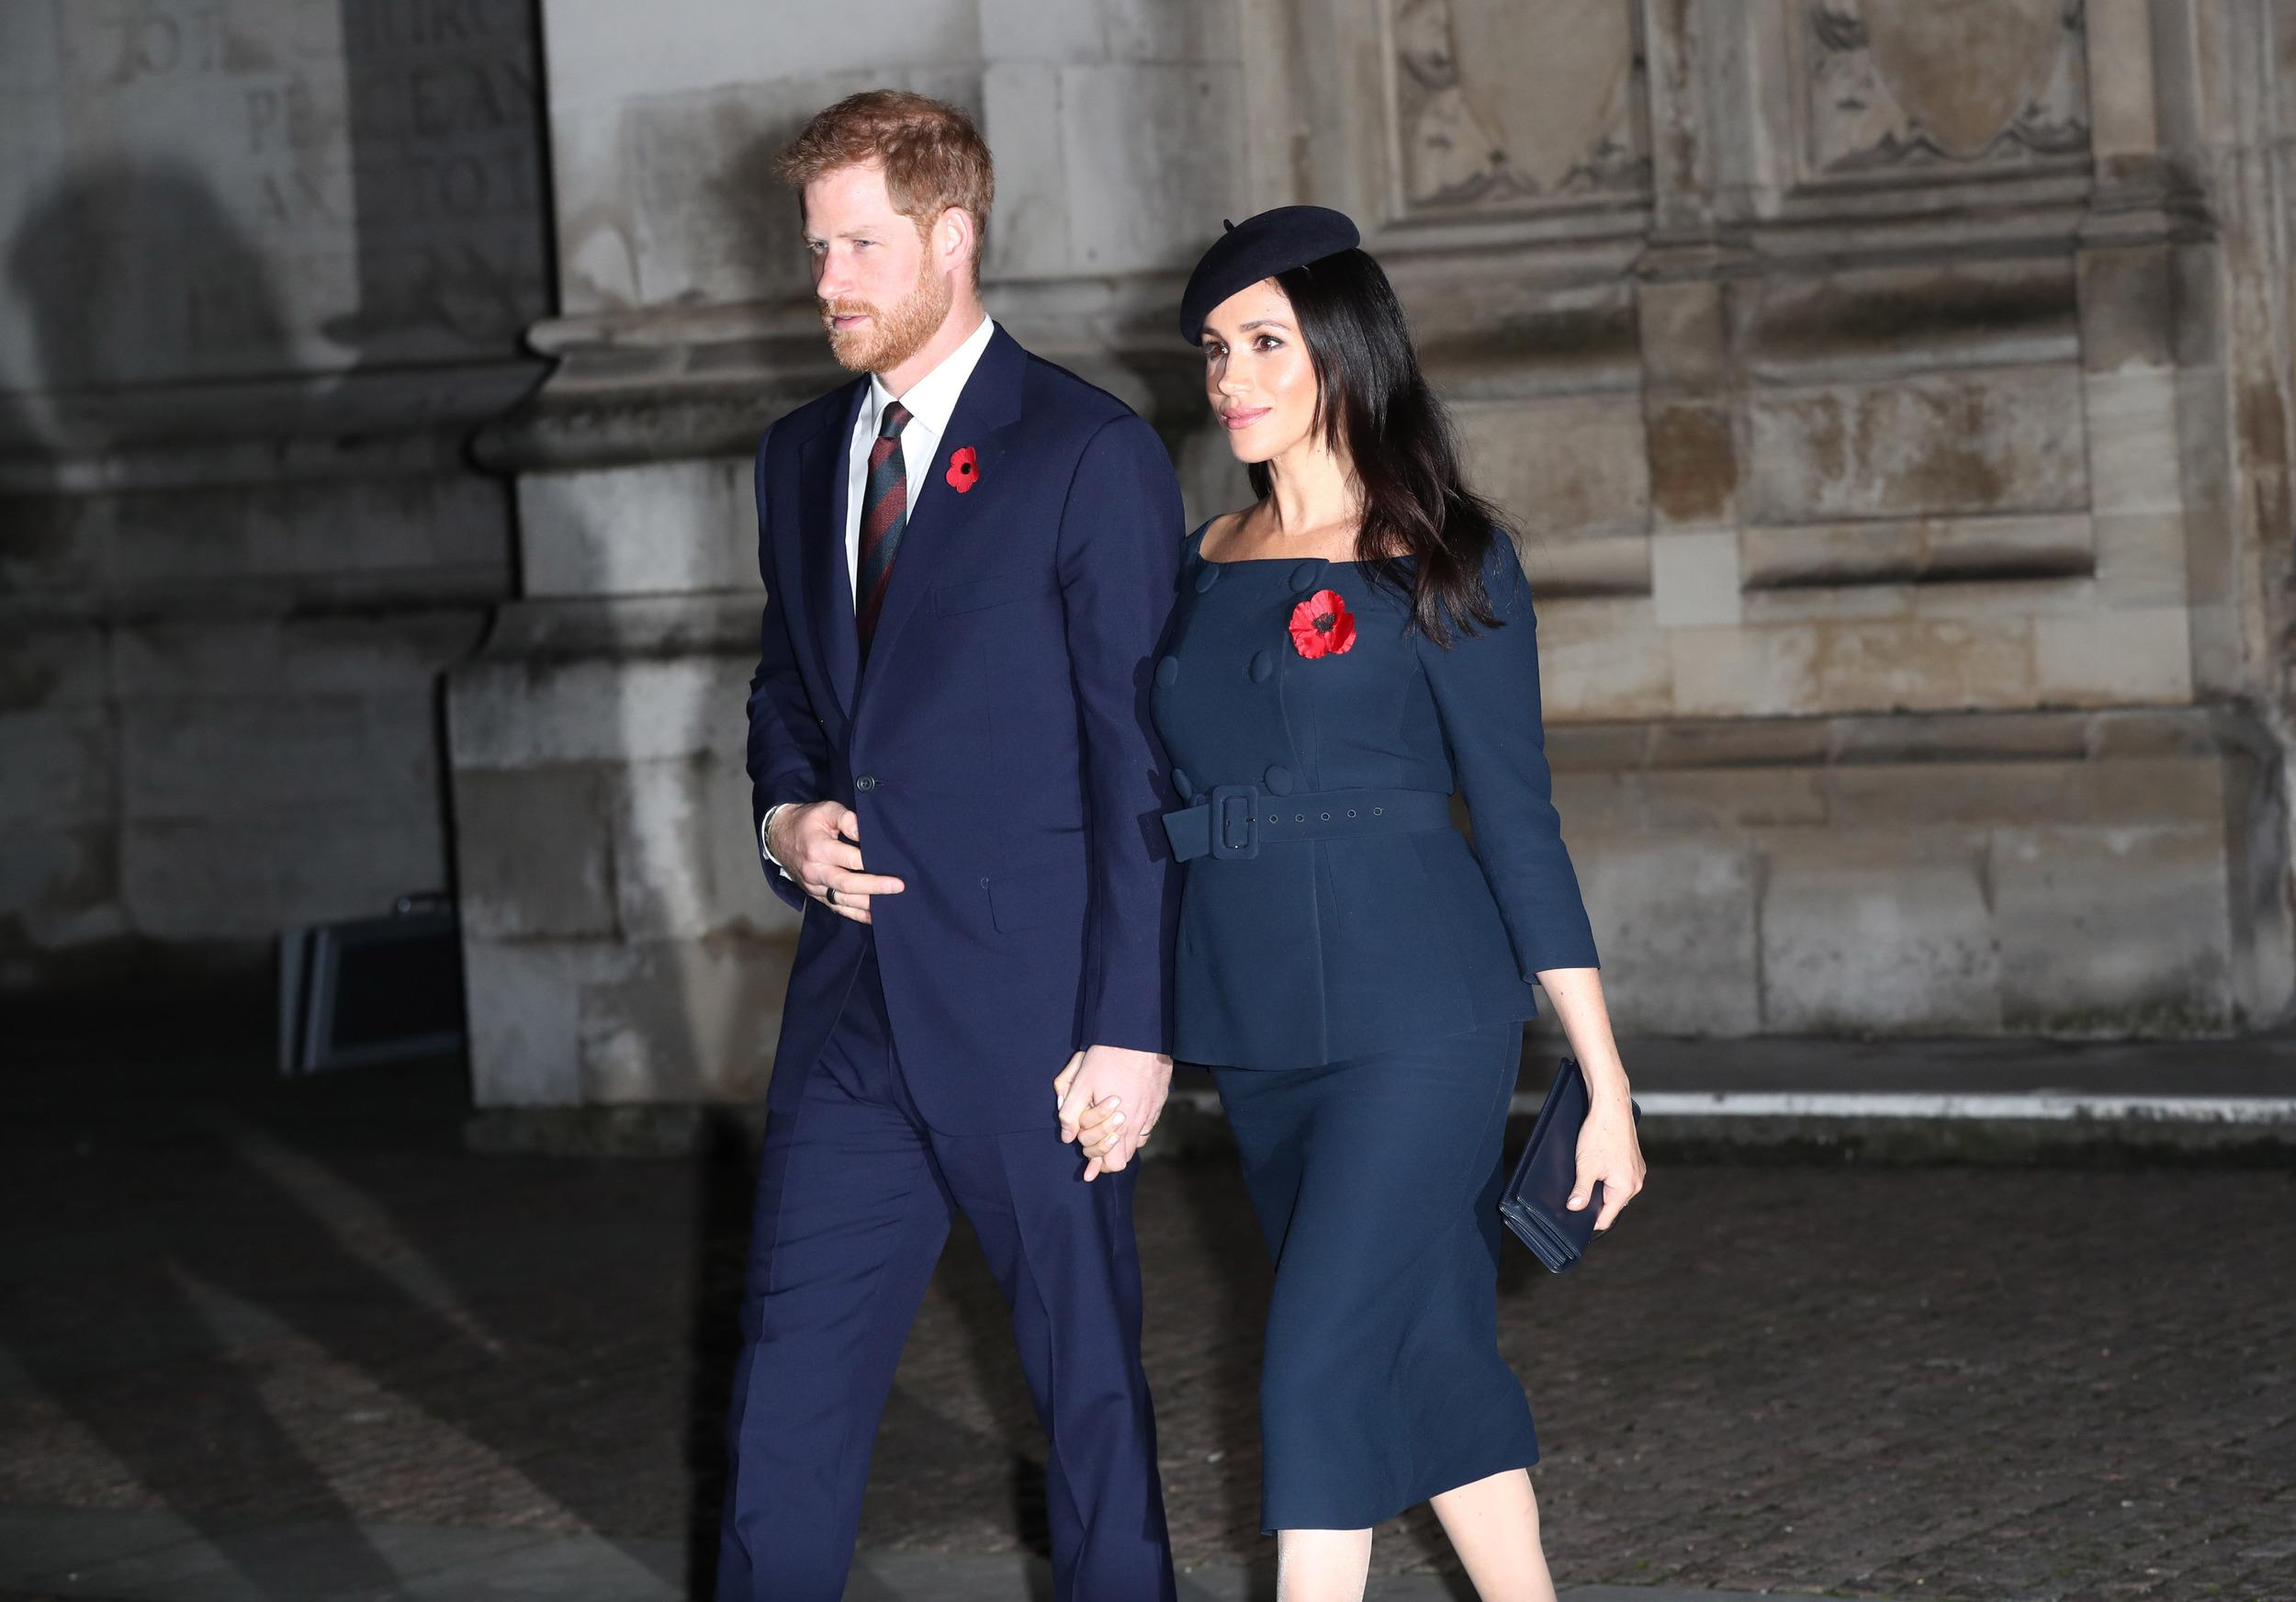 The Duke and Duchess of Sussex leave Westminster Abbey, London, after attending a National Service to mark the centenary of the Armistice.